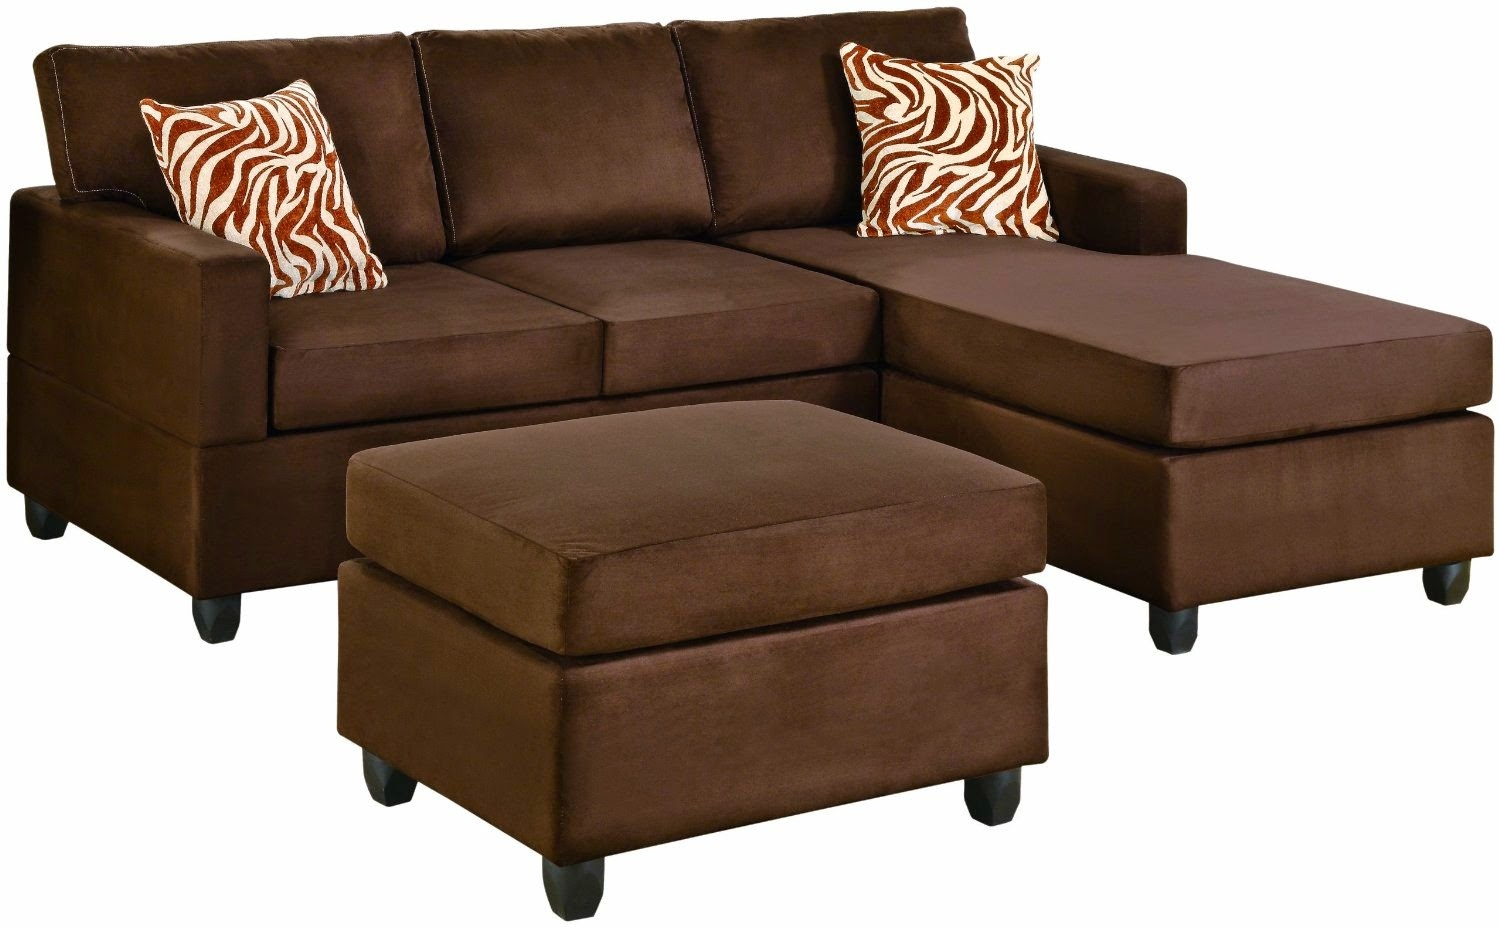 10 Piece Sectional Sofa Cleanupflorida Regarding 10 Piece Sectional Sofa (#2 of 12)